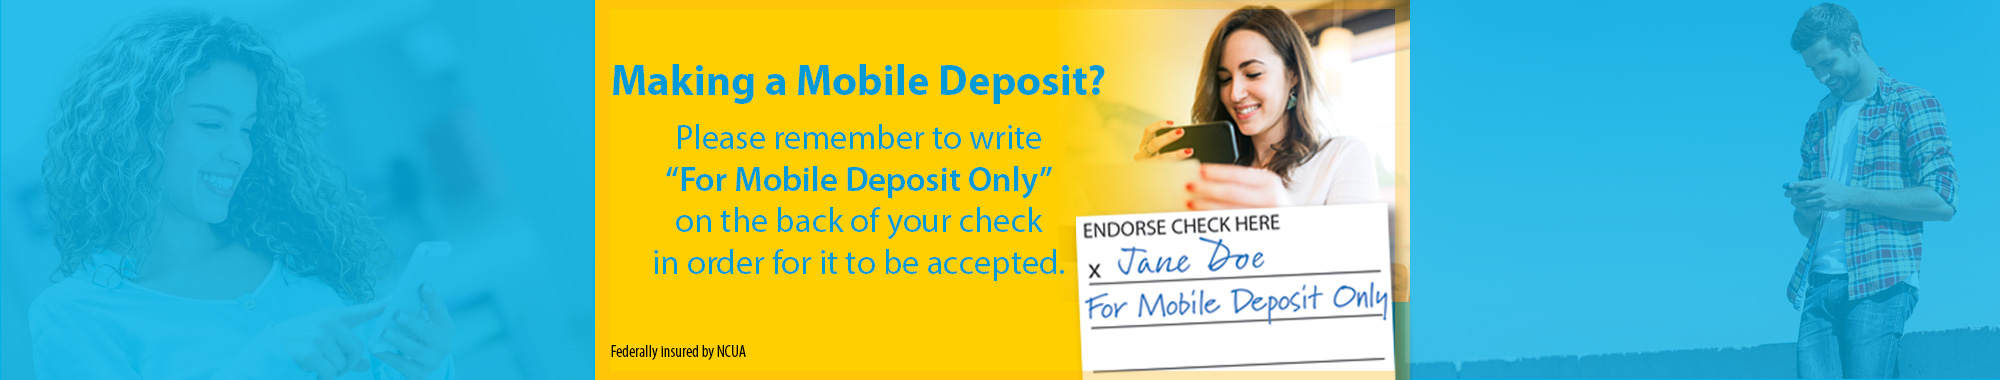 Making a Mobile Deposit?